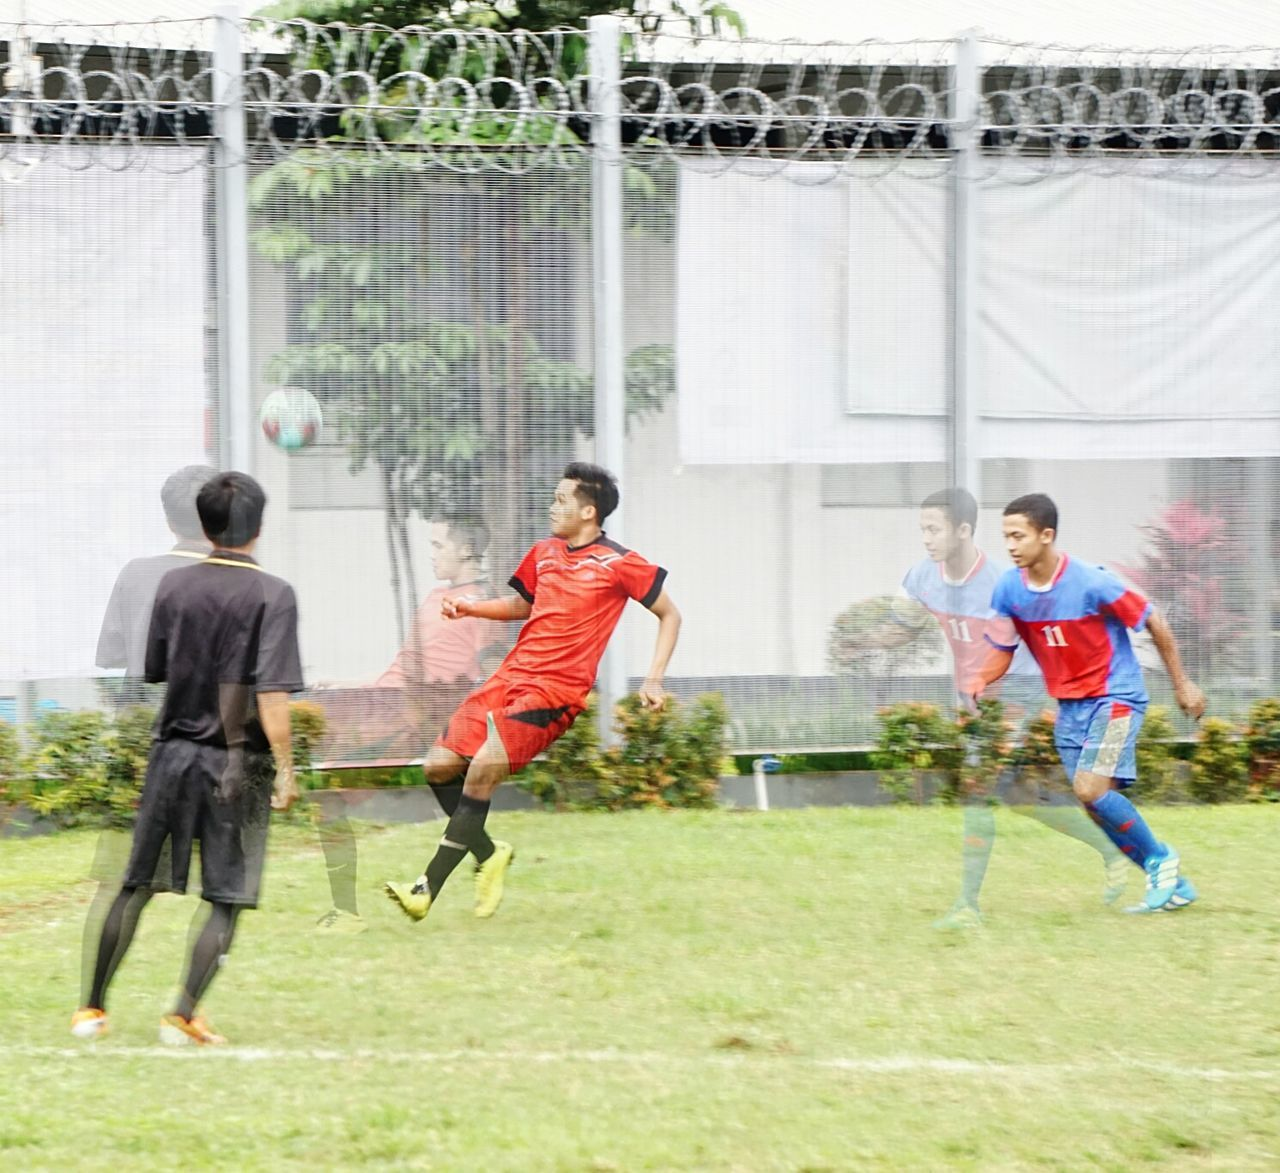 Bandung. Go get the Ball. Football Soccer Soccer Player Playfootball Sport DoubleExposurePhotography Double Exposure Competition Boys Motion Outdoors